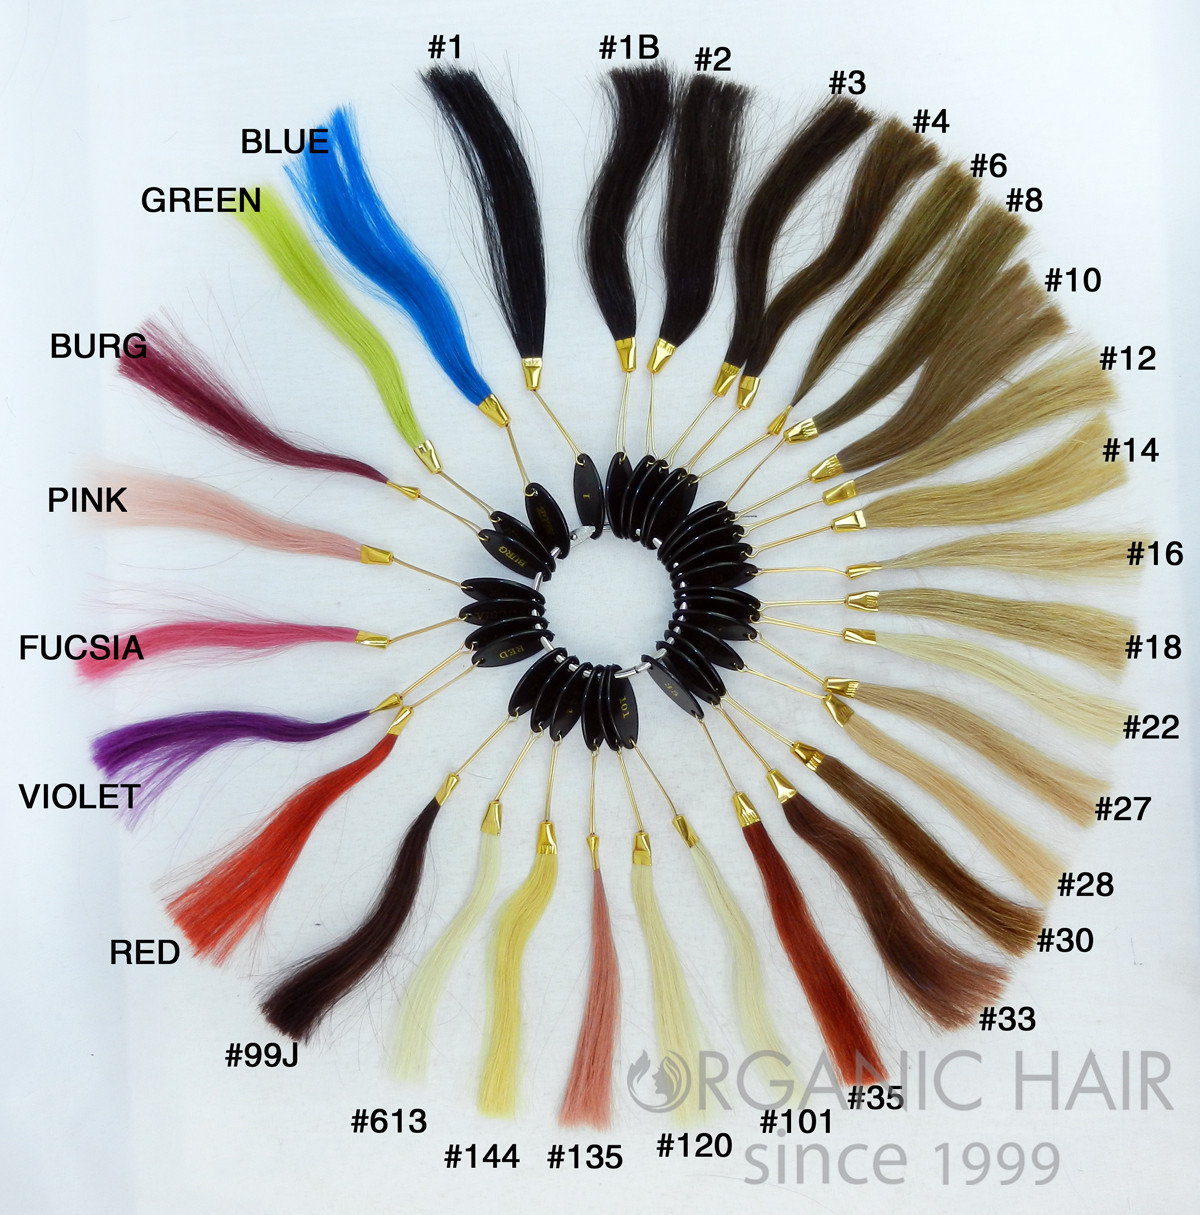 Organic hair factory Color Ring color swatch